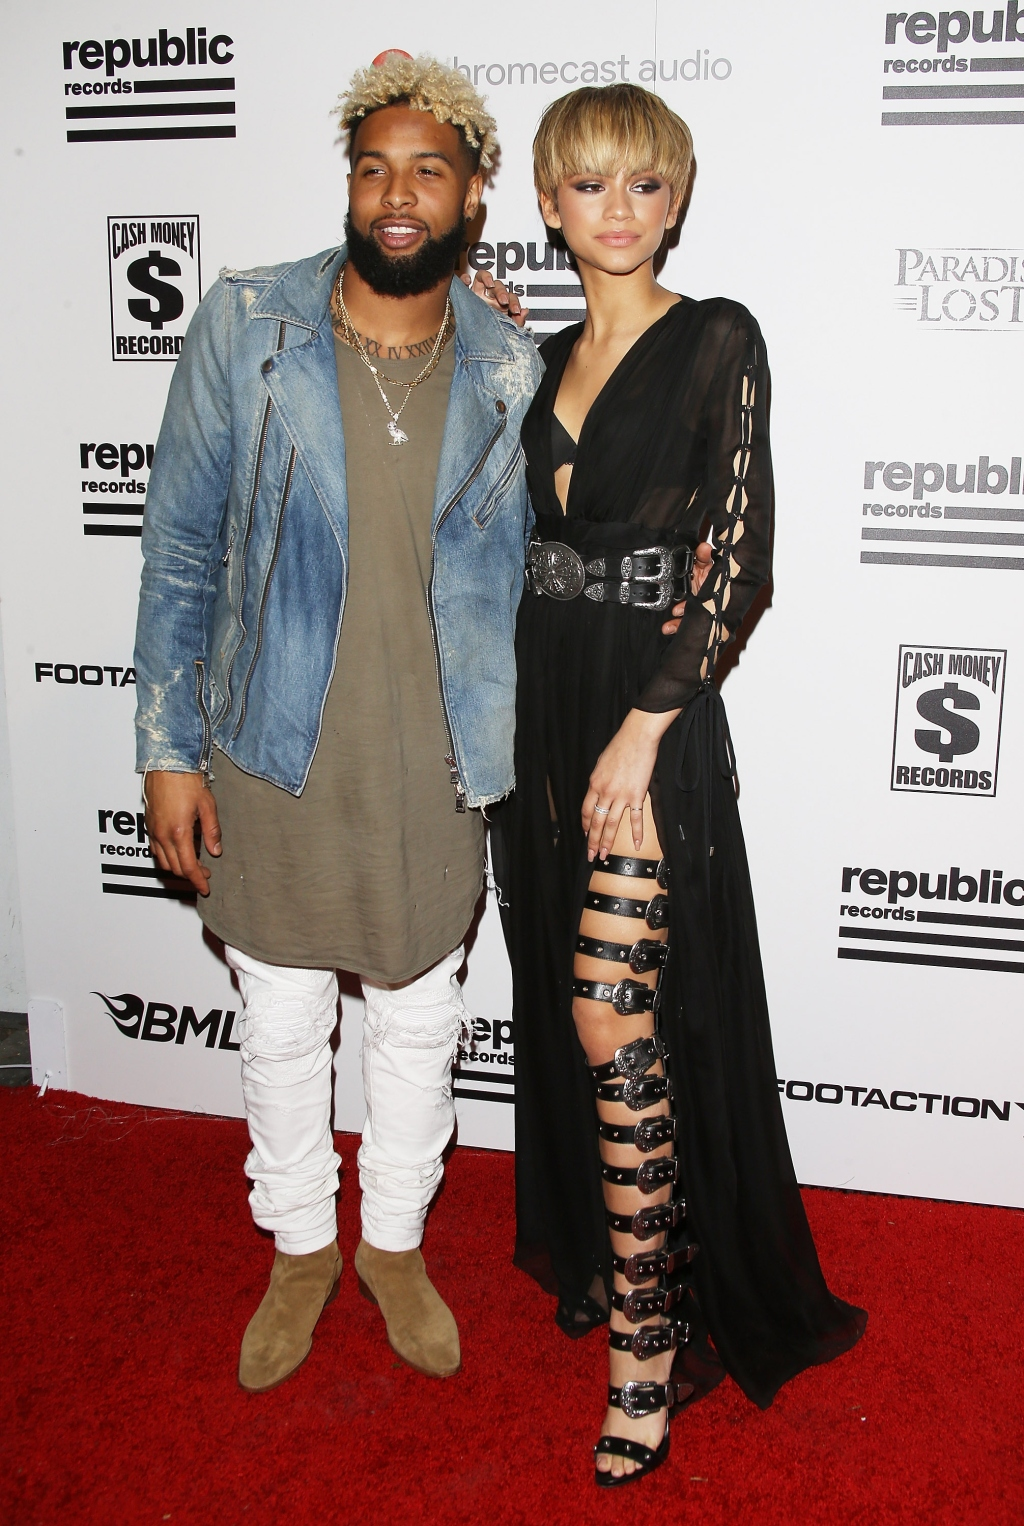 Republic Records Private GRAMMY Celebration - Arrivals